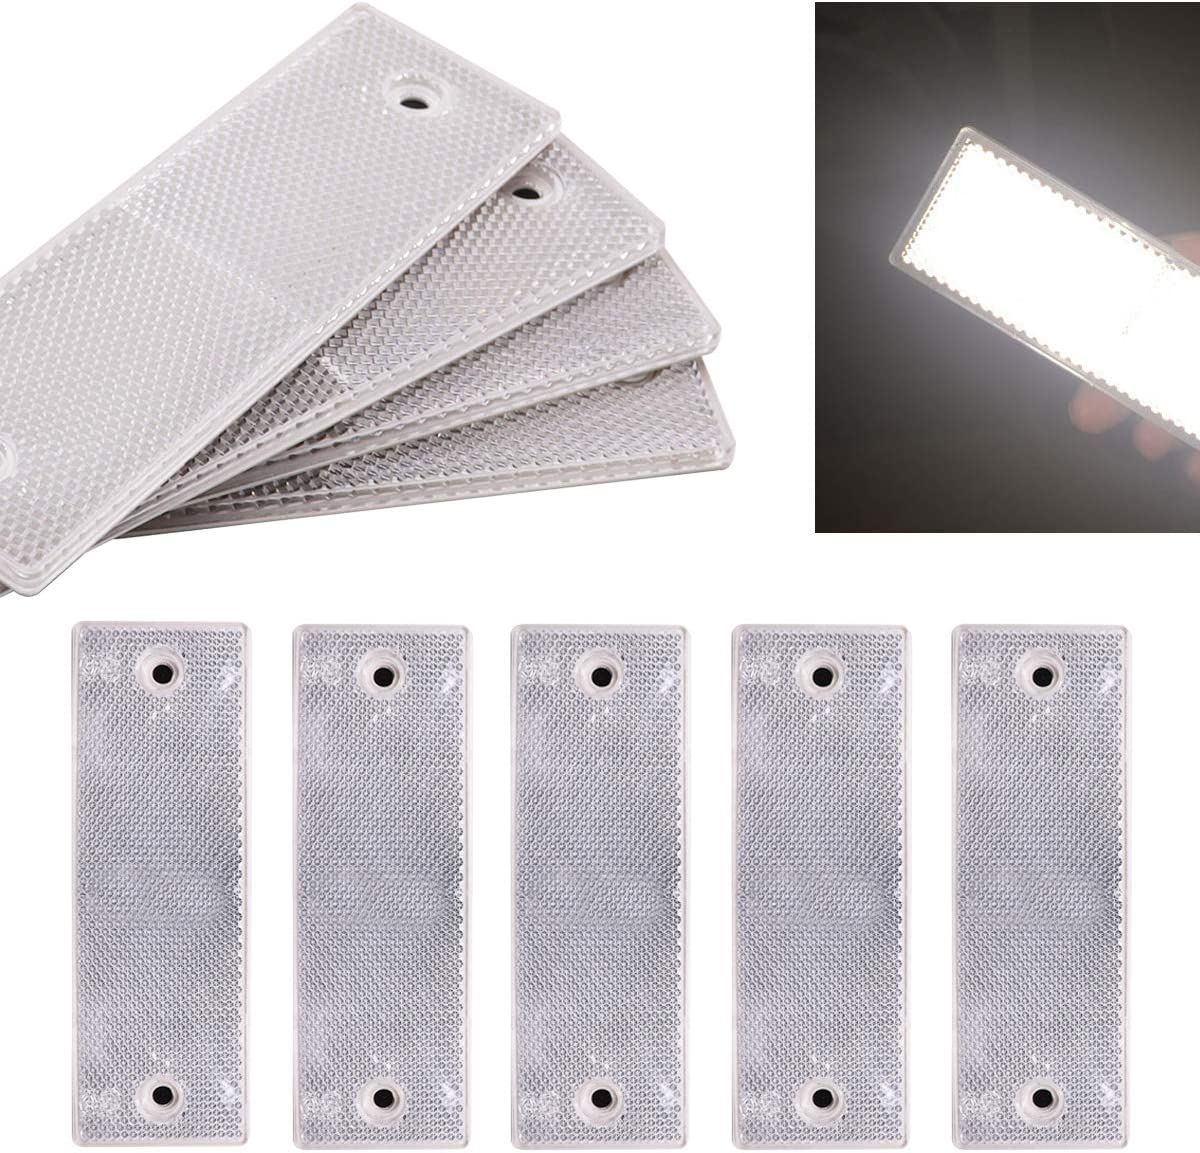 smseace 15pcs White Reflector Materi Chicago Mall Plastics Factory outlet Waterproof Sticker